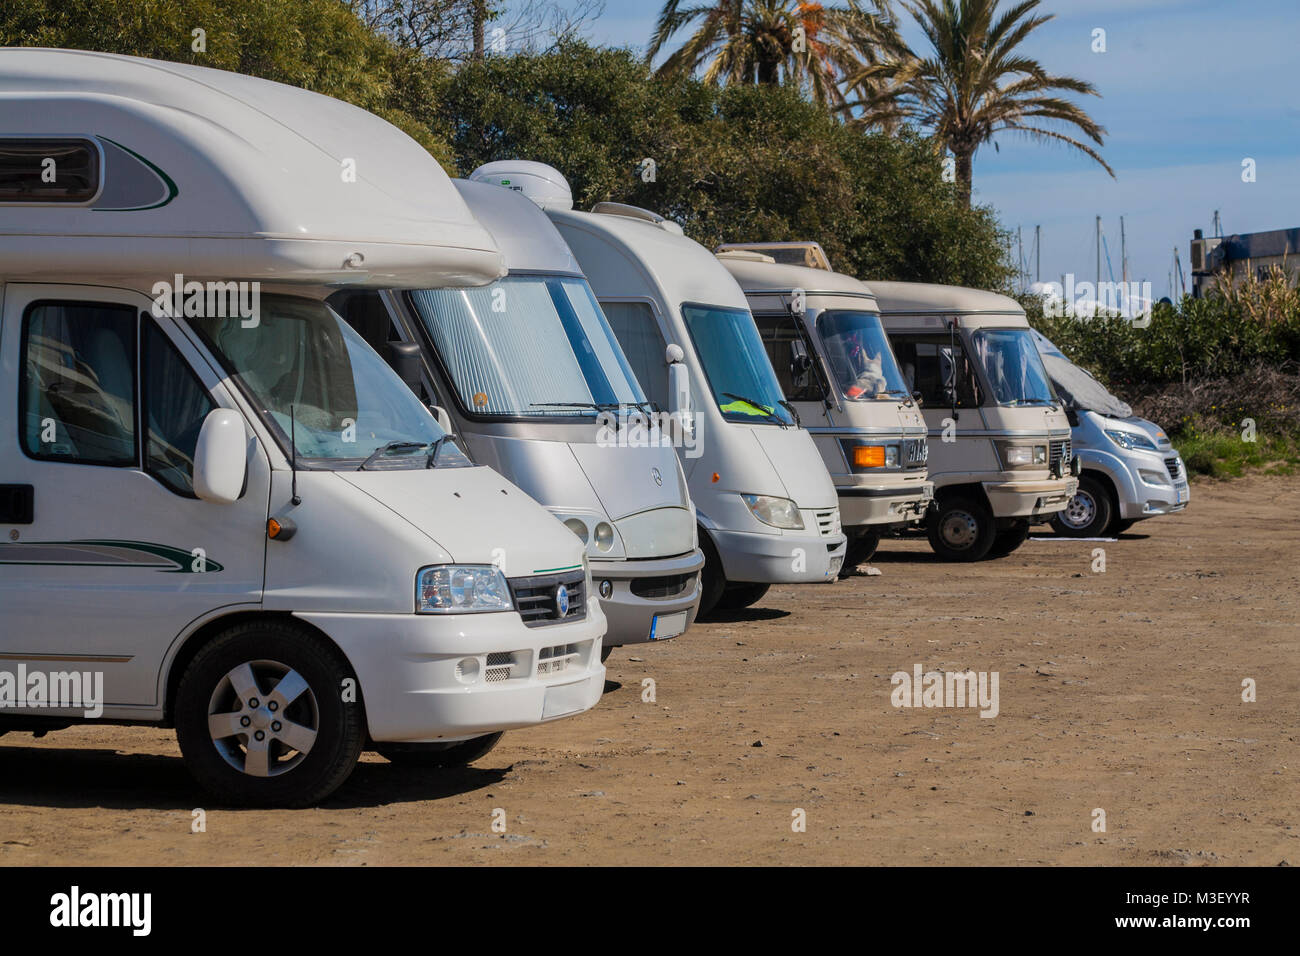 Spain caravan stock photos spain caravan stock images for Camel motors on park and ajo